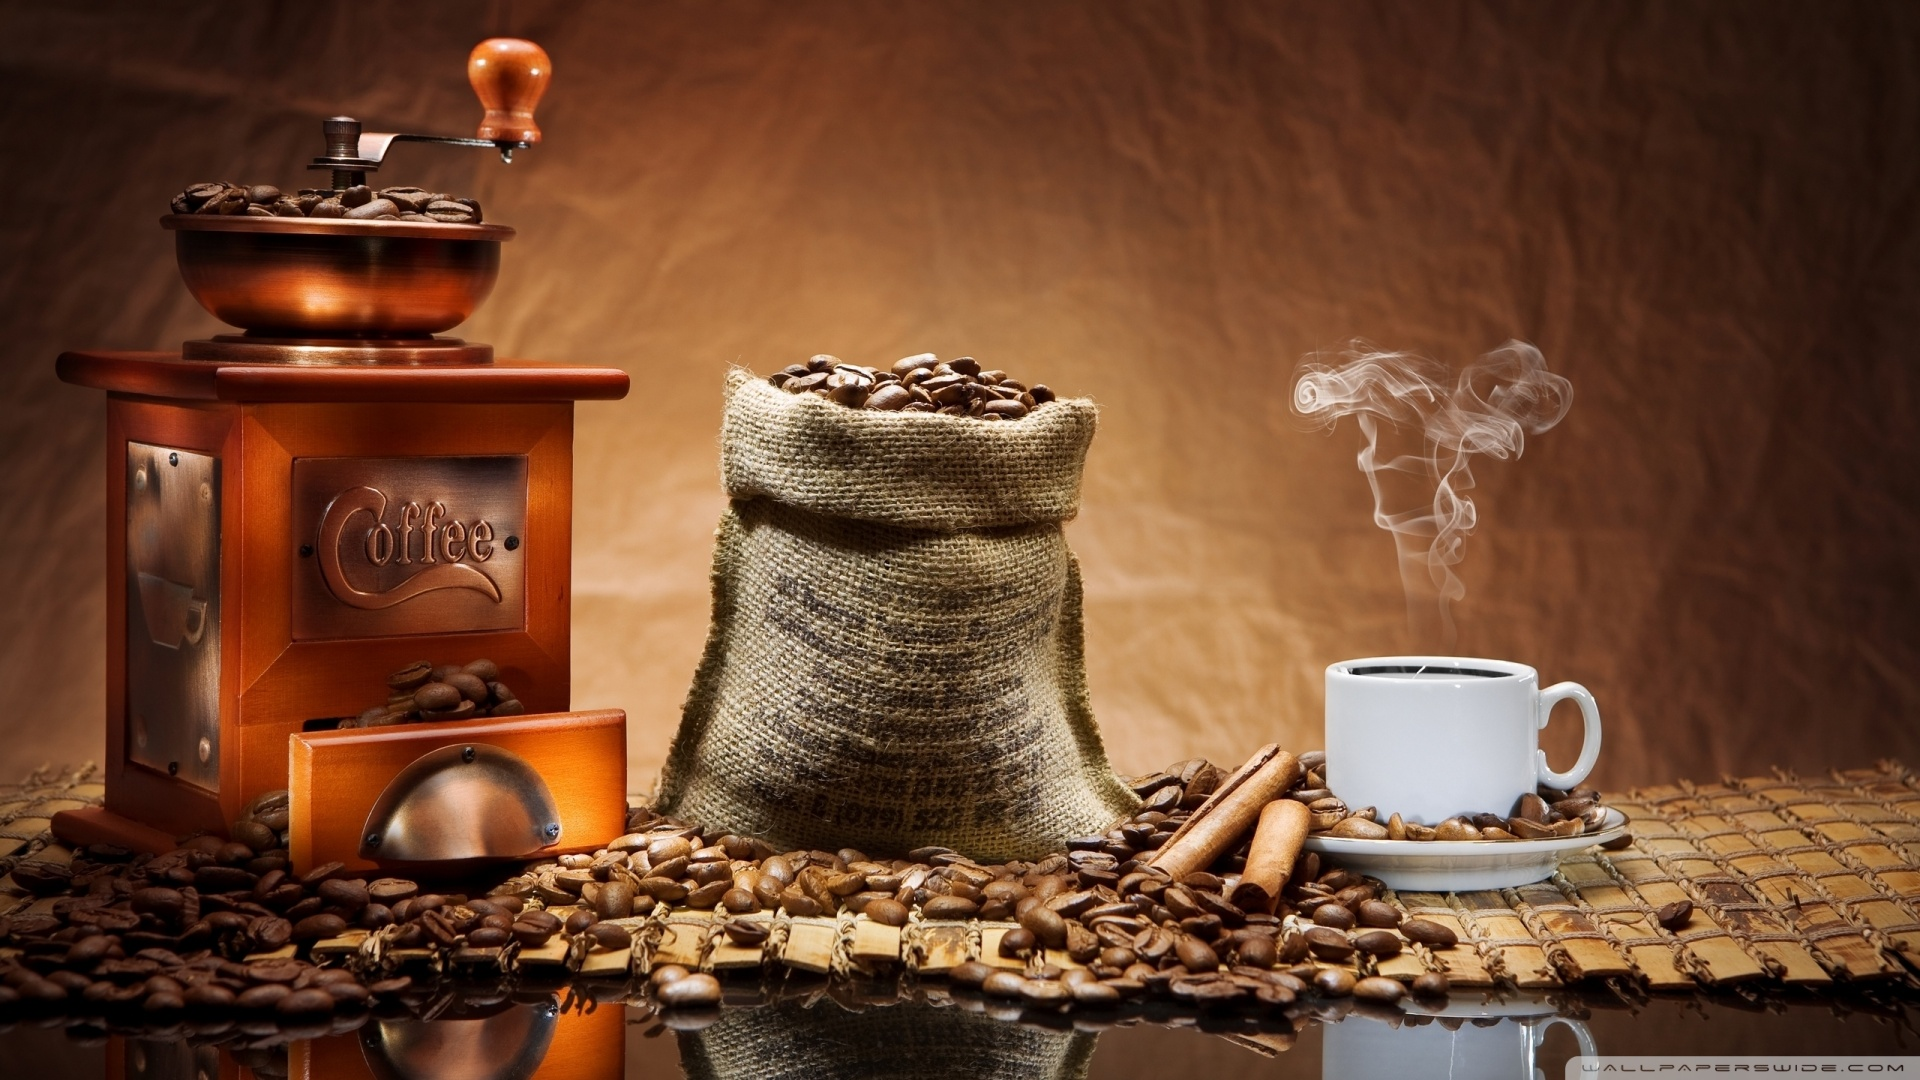 Coffee Beans Grinder Wallpaper